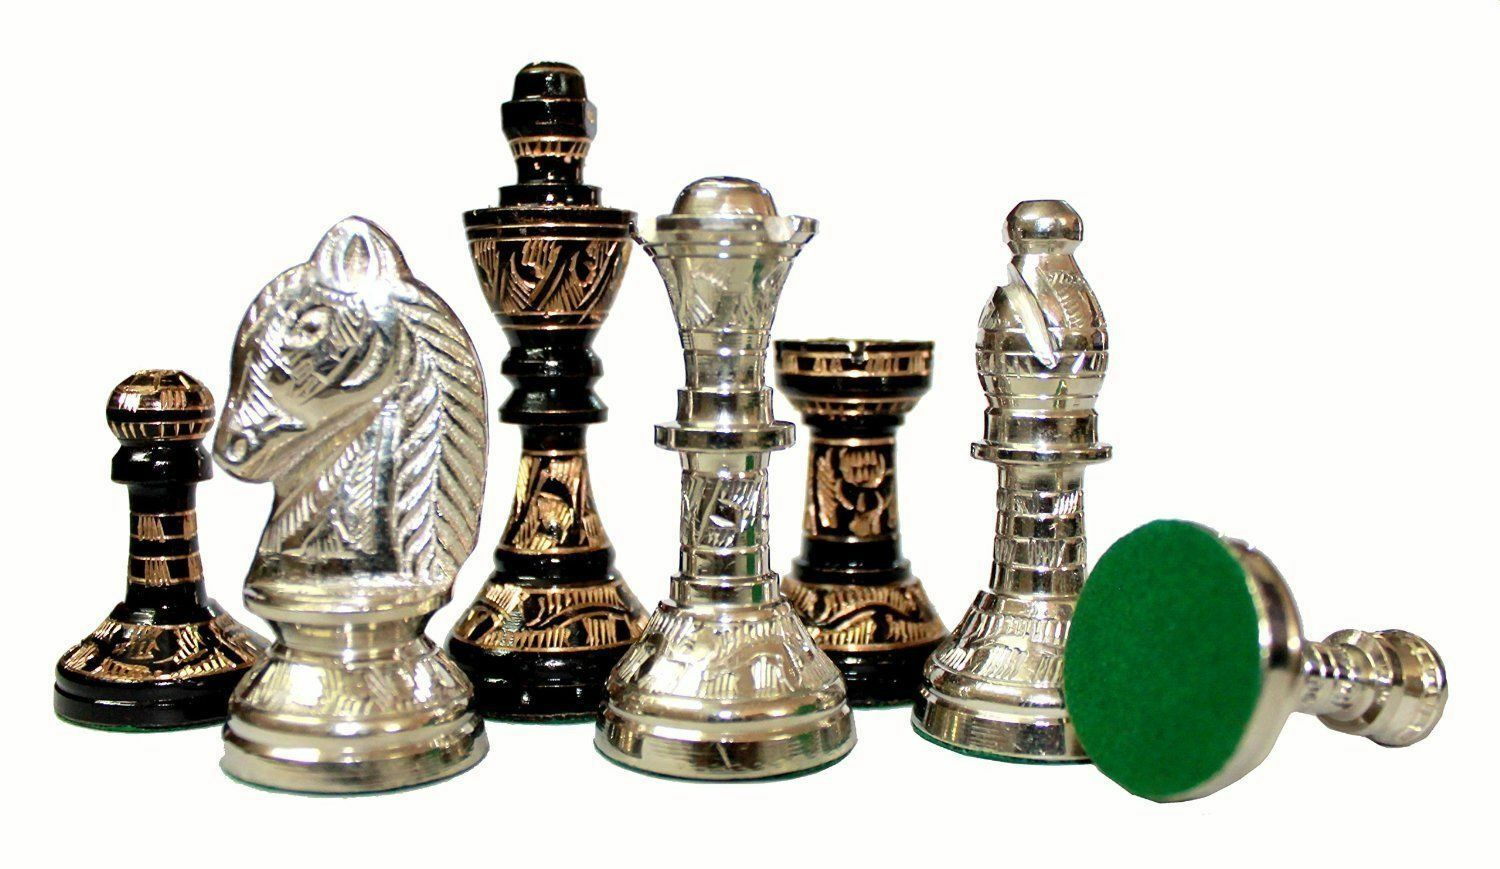 100% Brass 14  x 14  Collectible Premium Metal Brass Made Chess Board Game Set